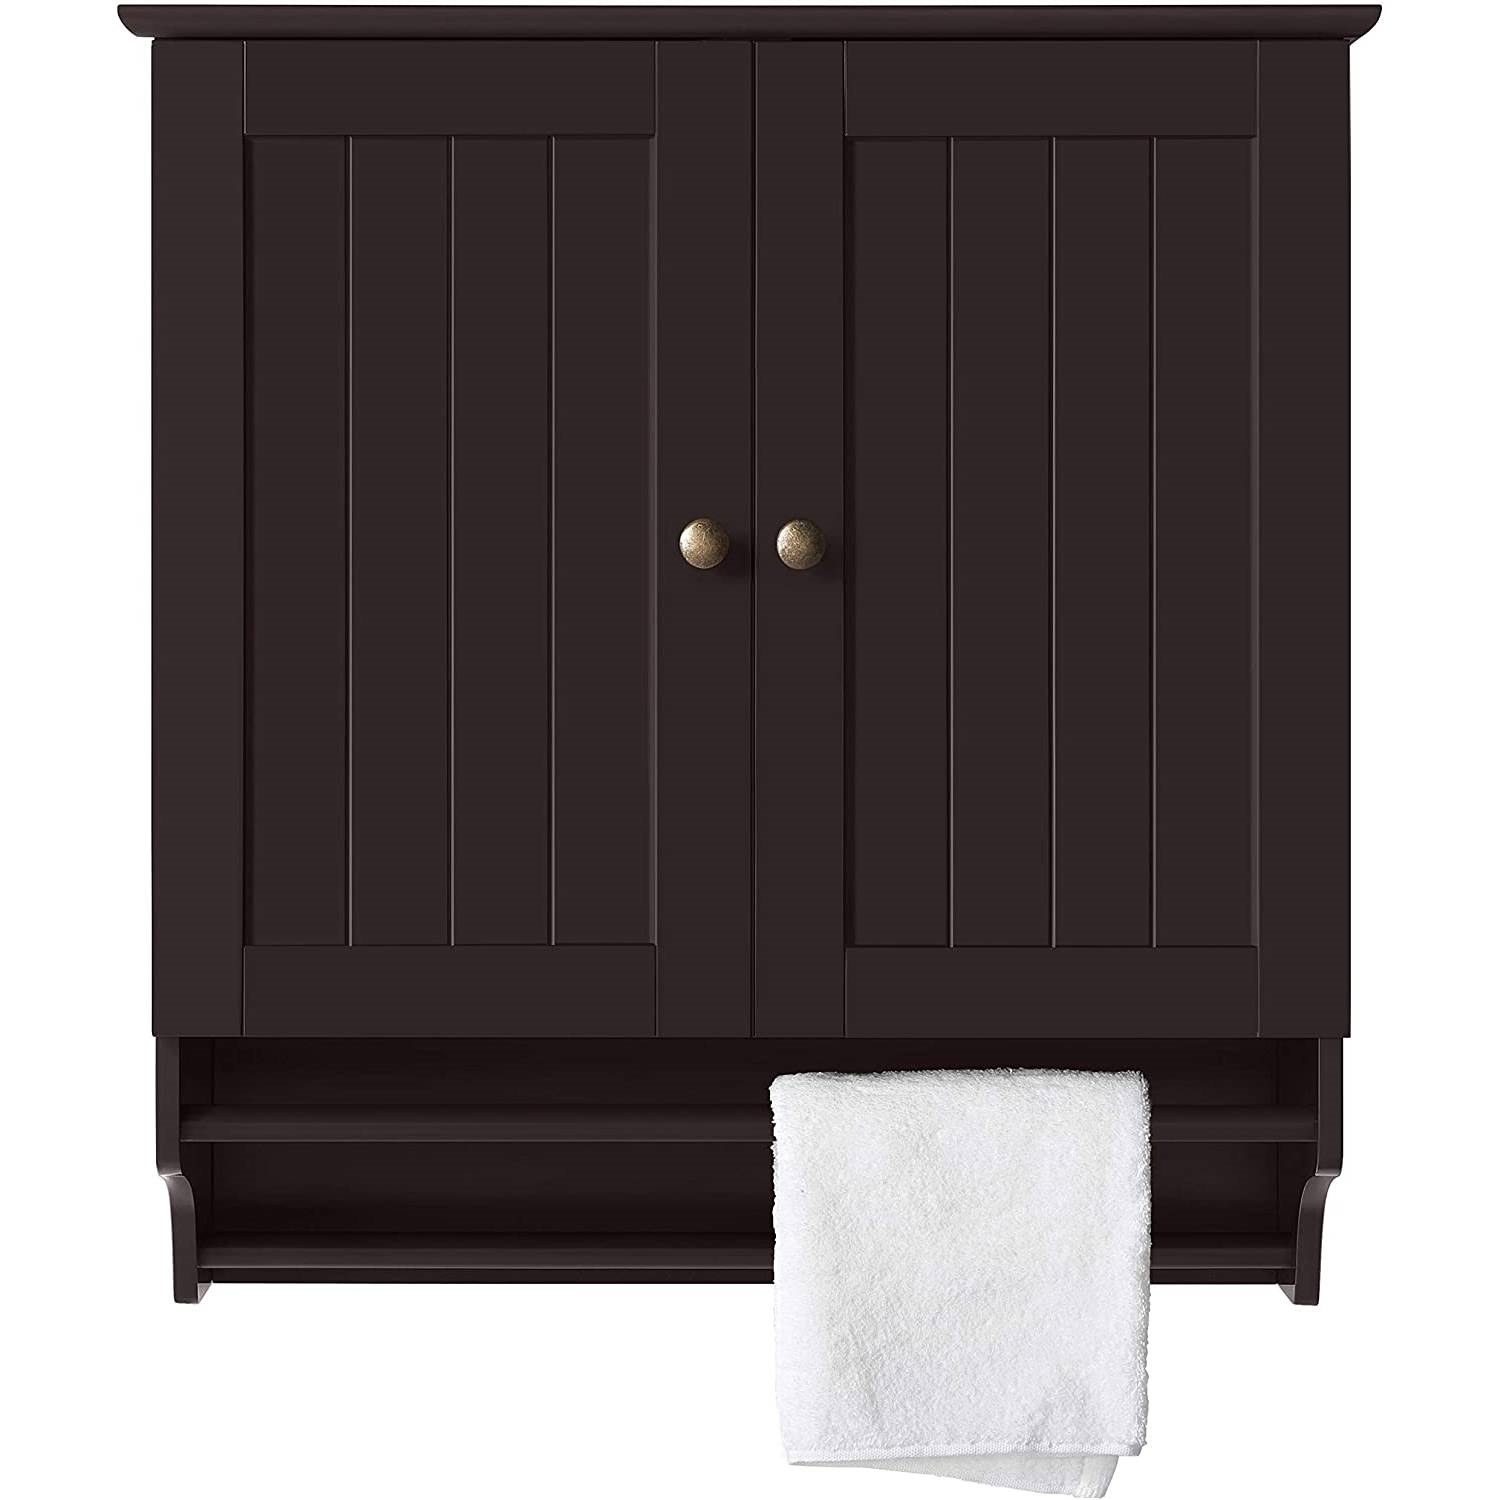 Espresso 2 Door Bathroom Wall Cabinet Cupboard With Towel Bar